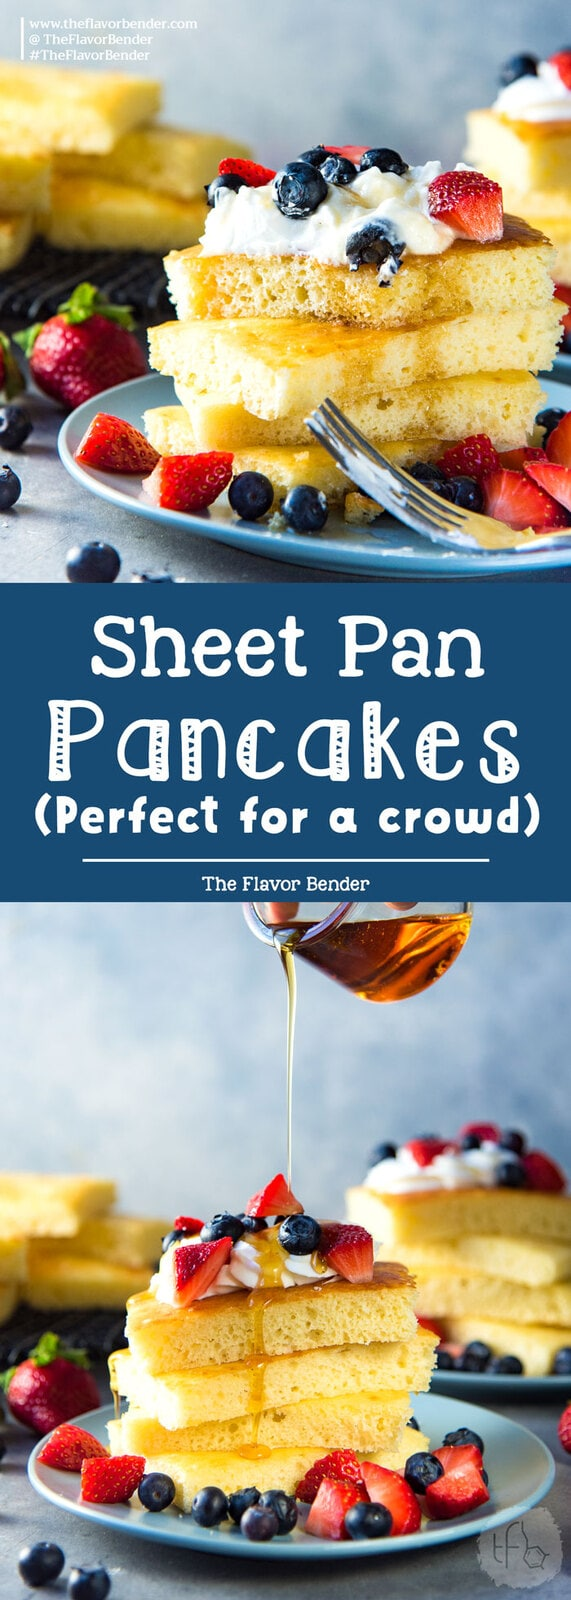 Sheet pan pancakes - Soft light and fluffy oven baked pancakes for breakfast or brunch. Perfect for a crowd, and easy to make.